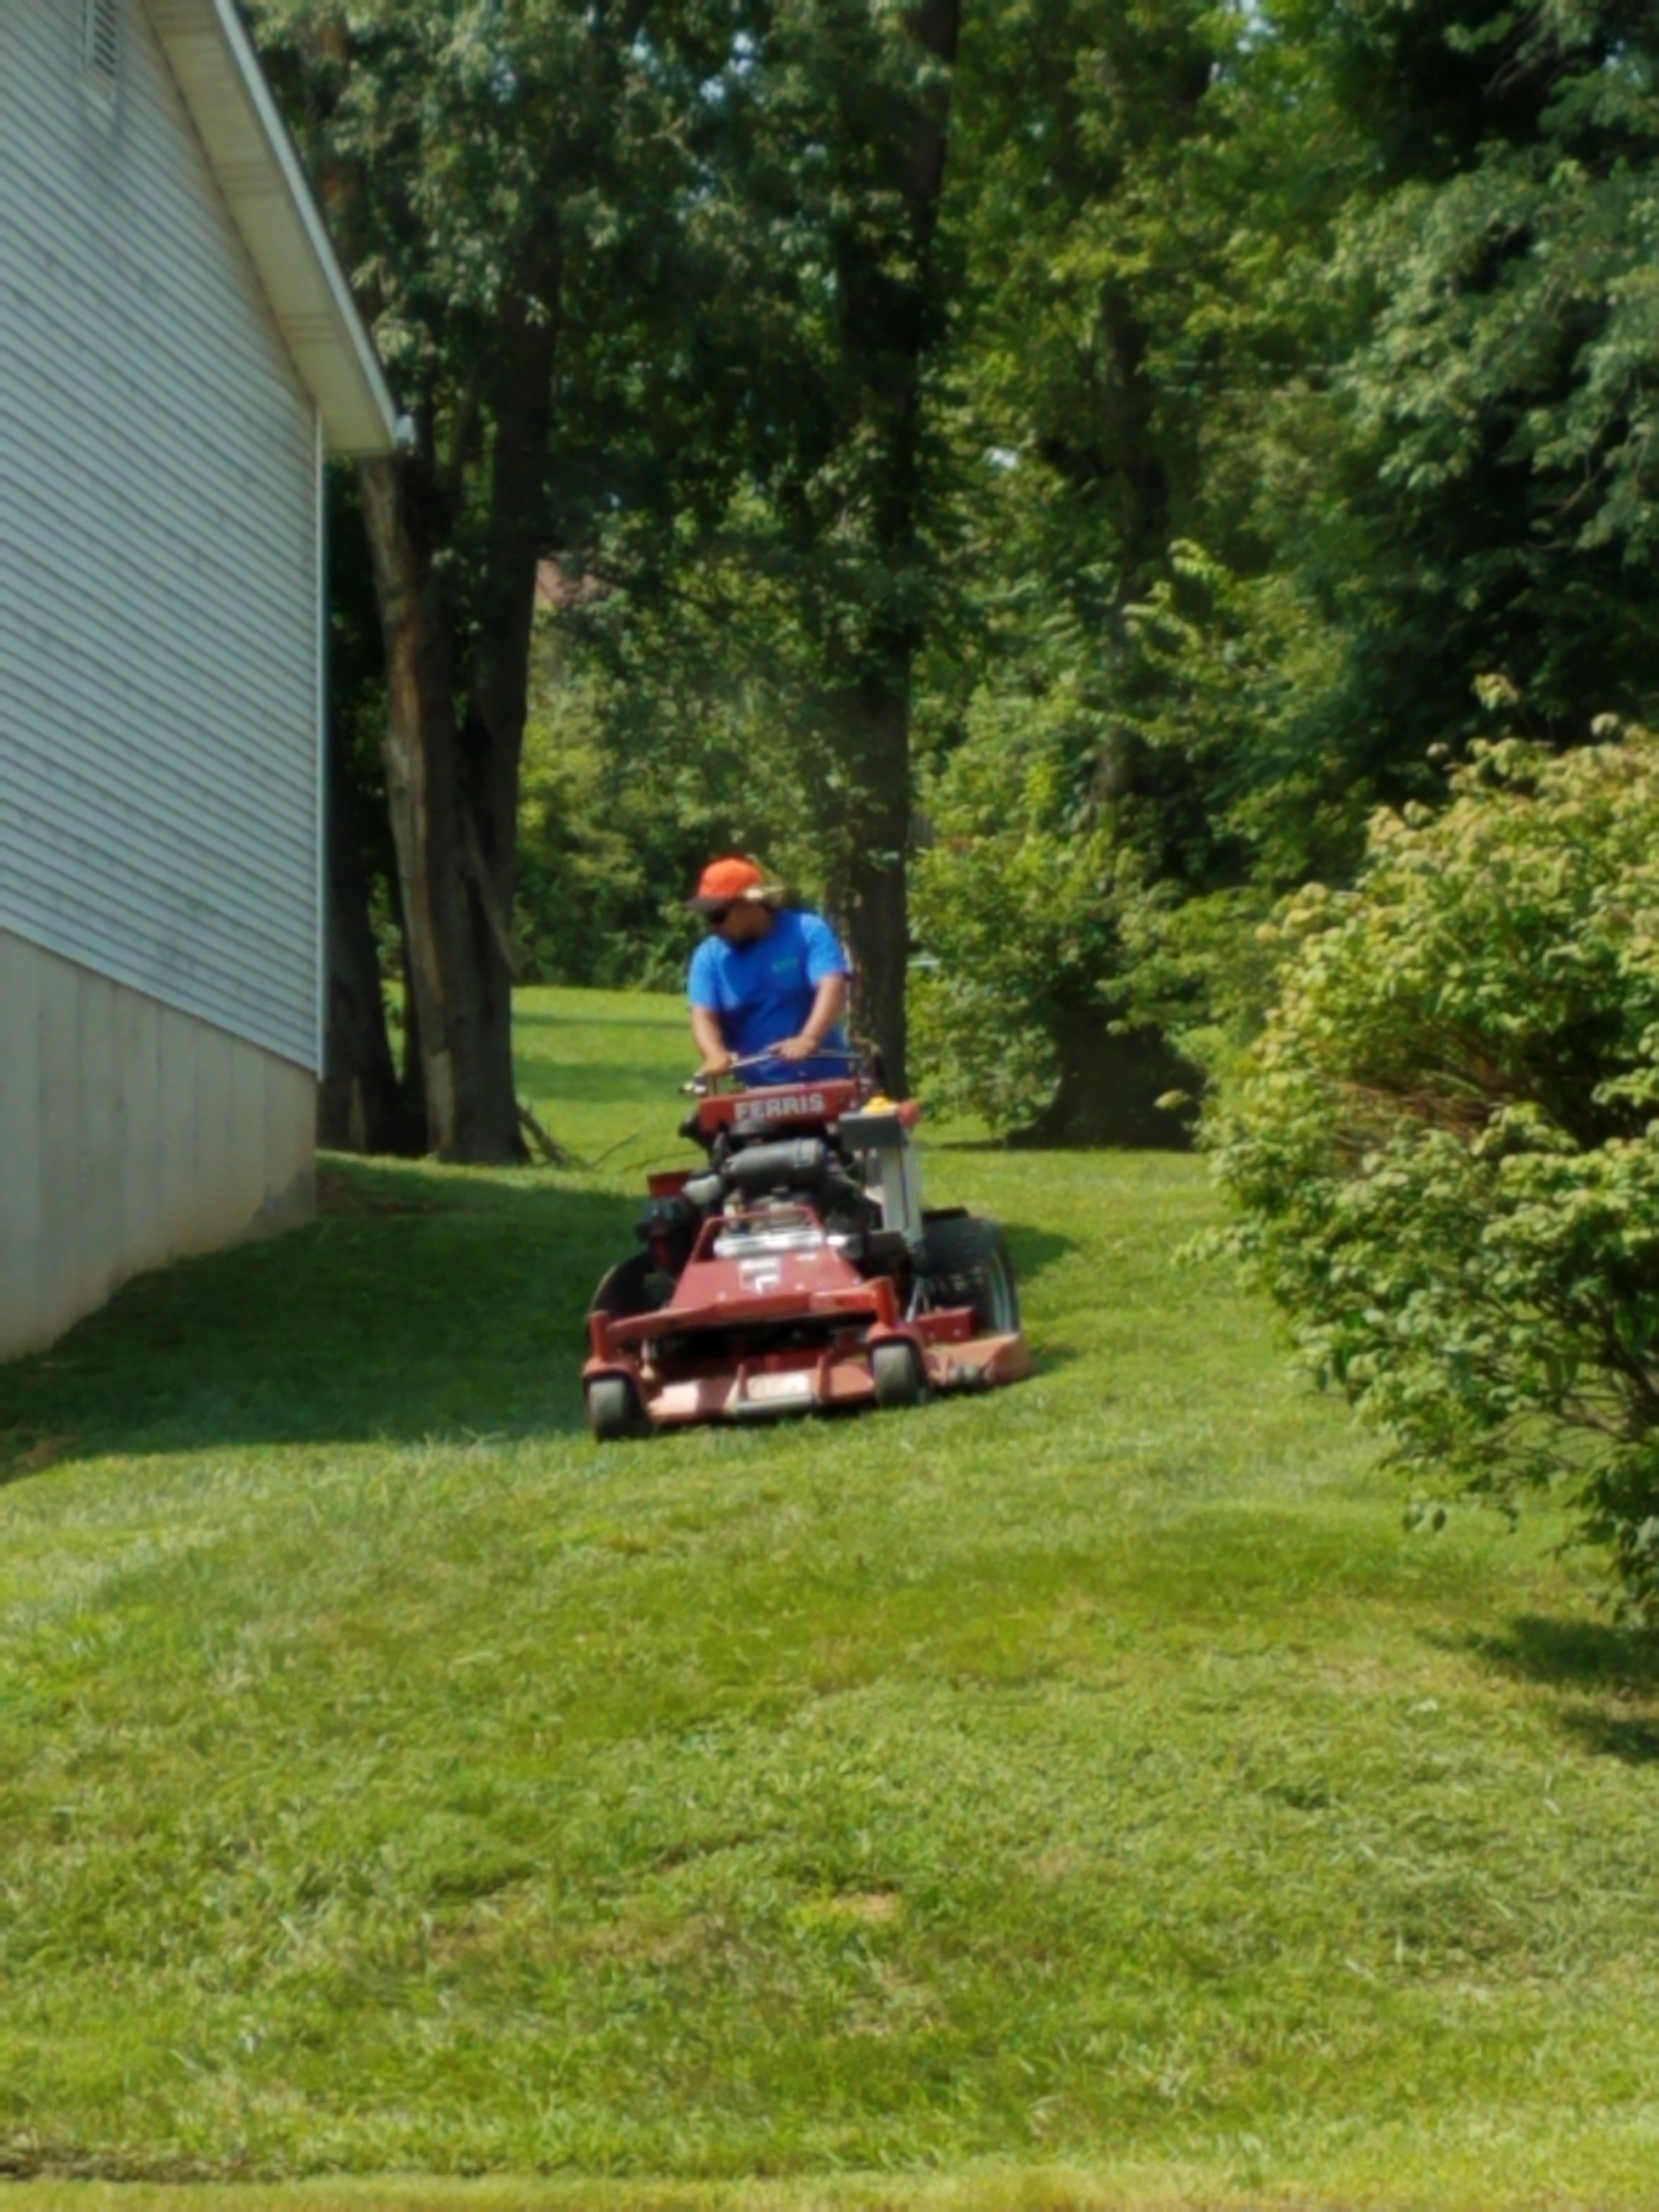 Lawn Mowing Maintenance Service St Louis Mo Area Pro Care Landscaping